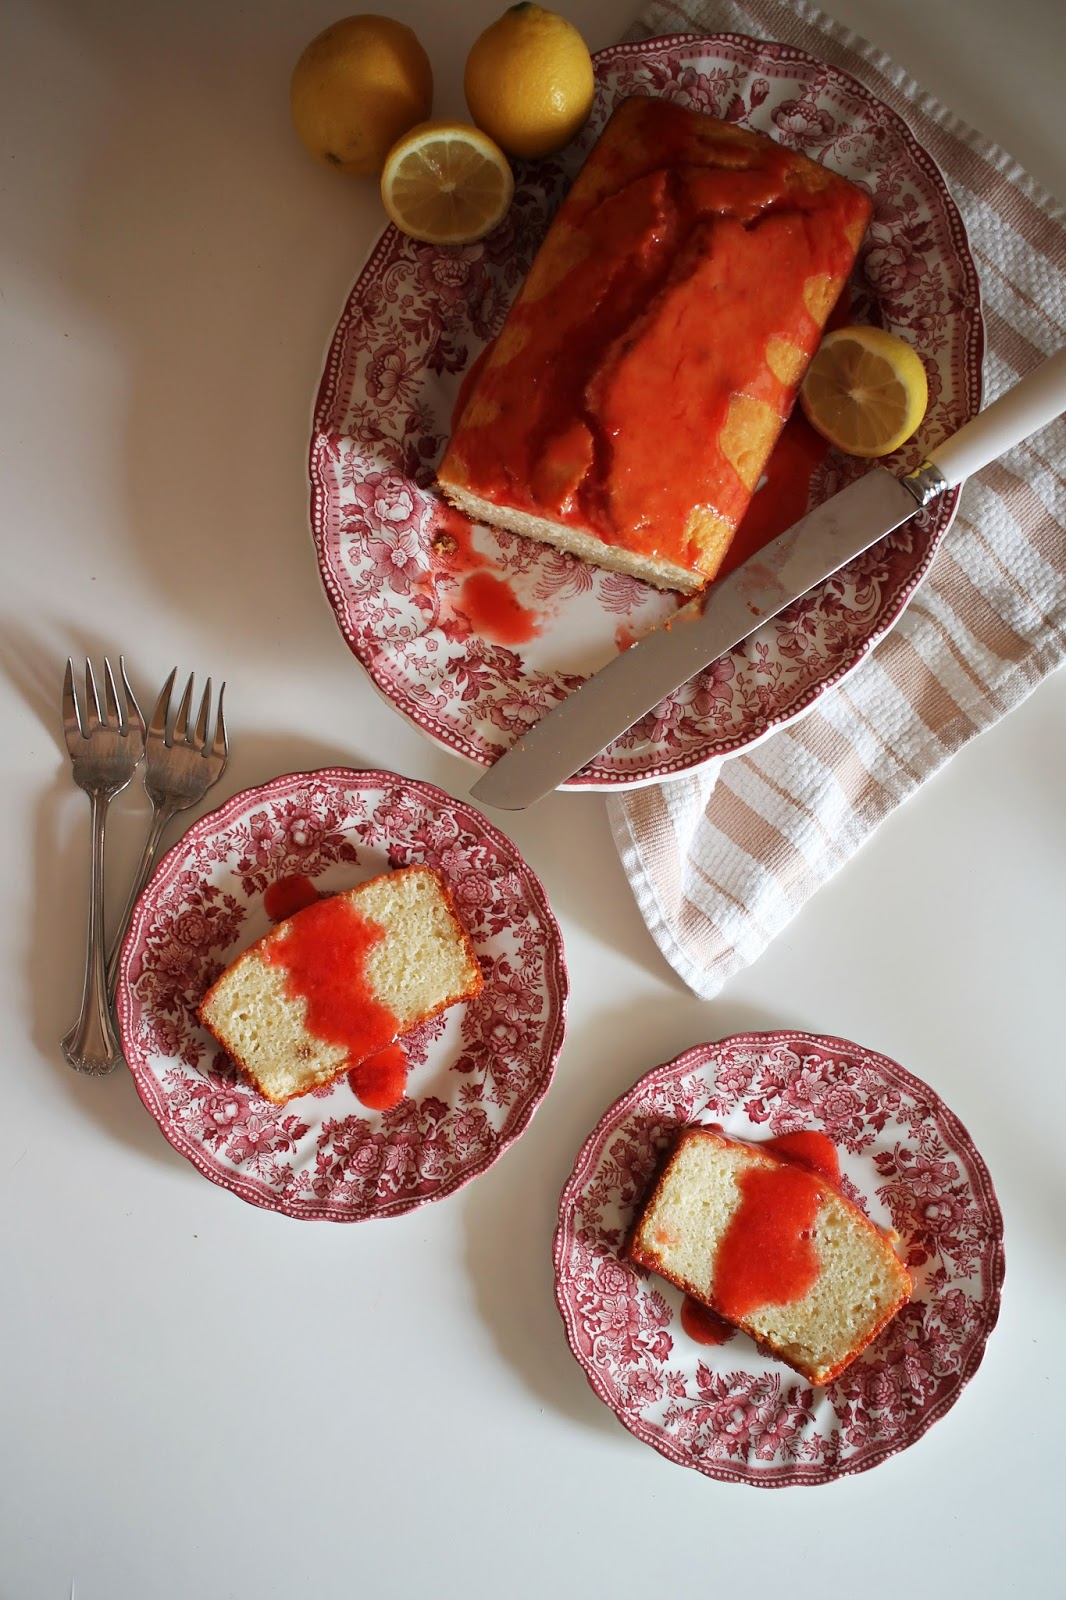 Lemon Yogurt Cake with Strawberry Sauce